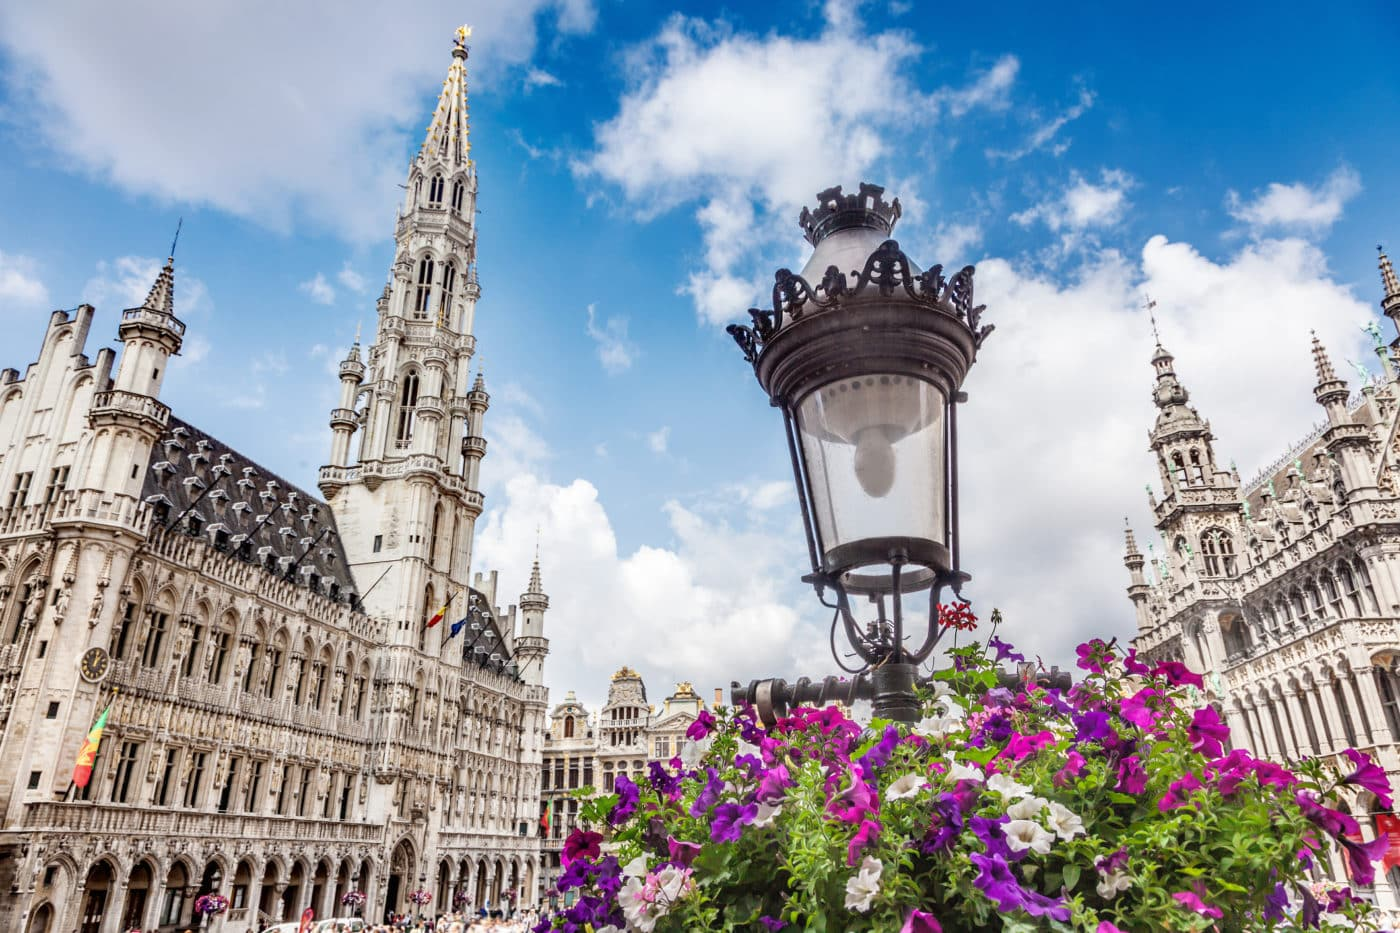 Things to see and do in Brussels